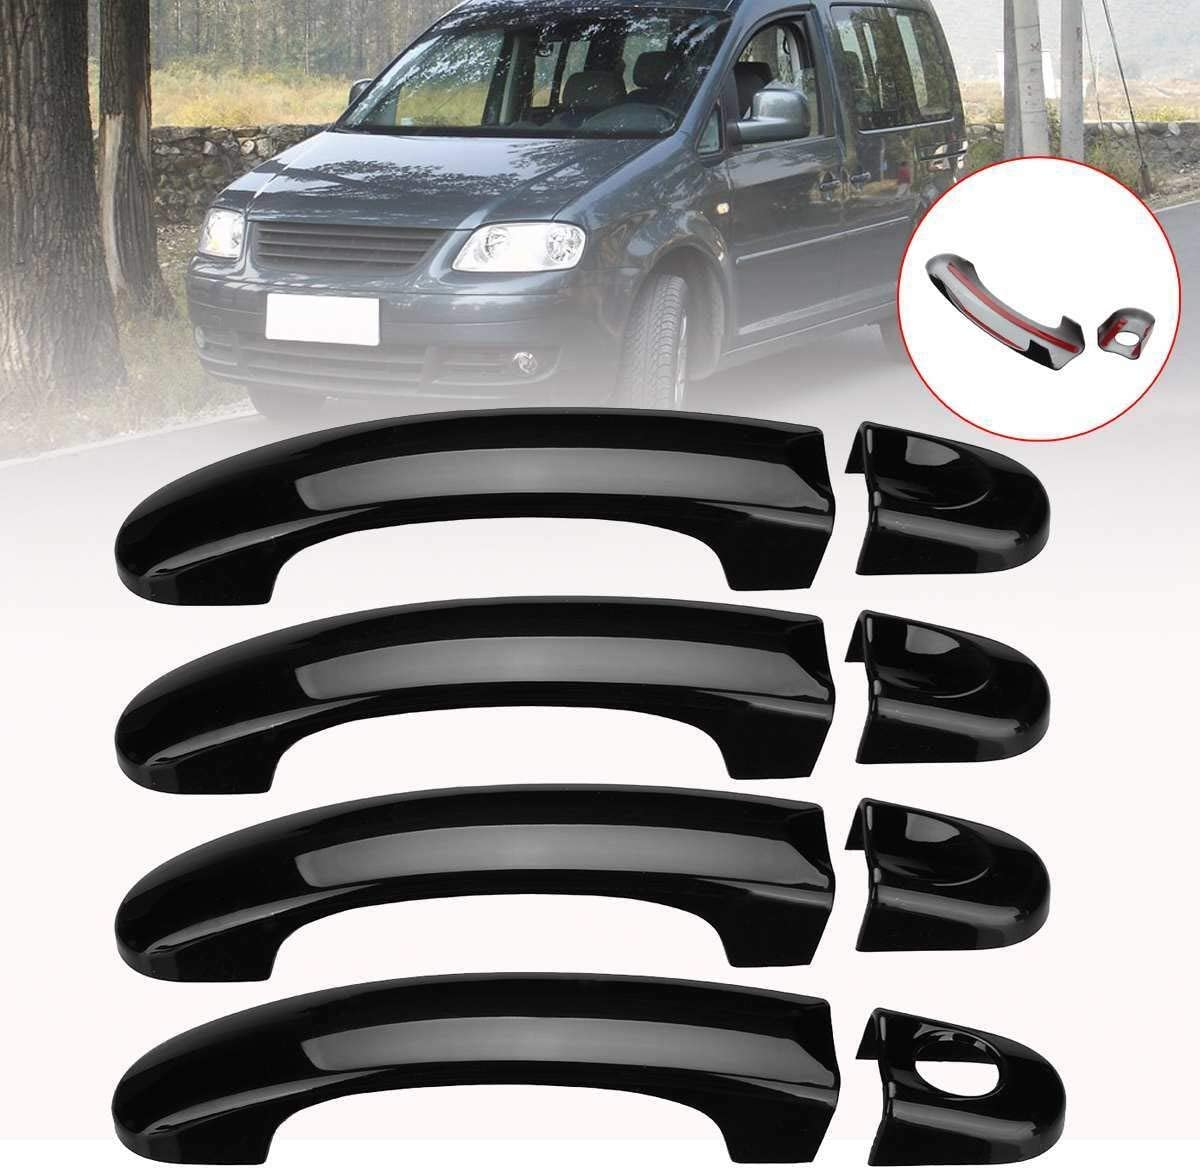 NO LOGO FJY-HANDLE 1 Set Car Door Handle Covers Trim For VW Transporter T5 T6 2003-2009 Car Exterior Door Handles ABS Gloss Black//Carbon Black Color : A